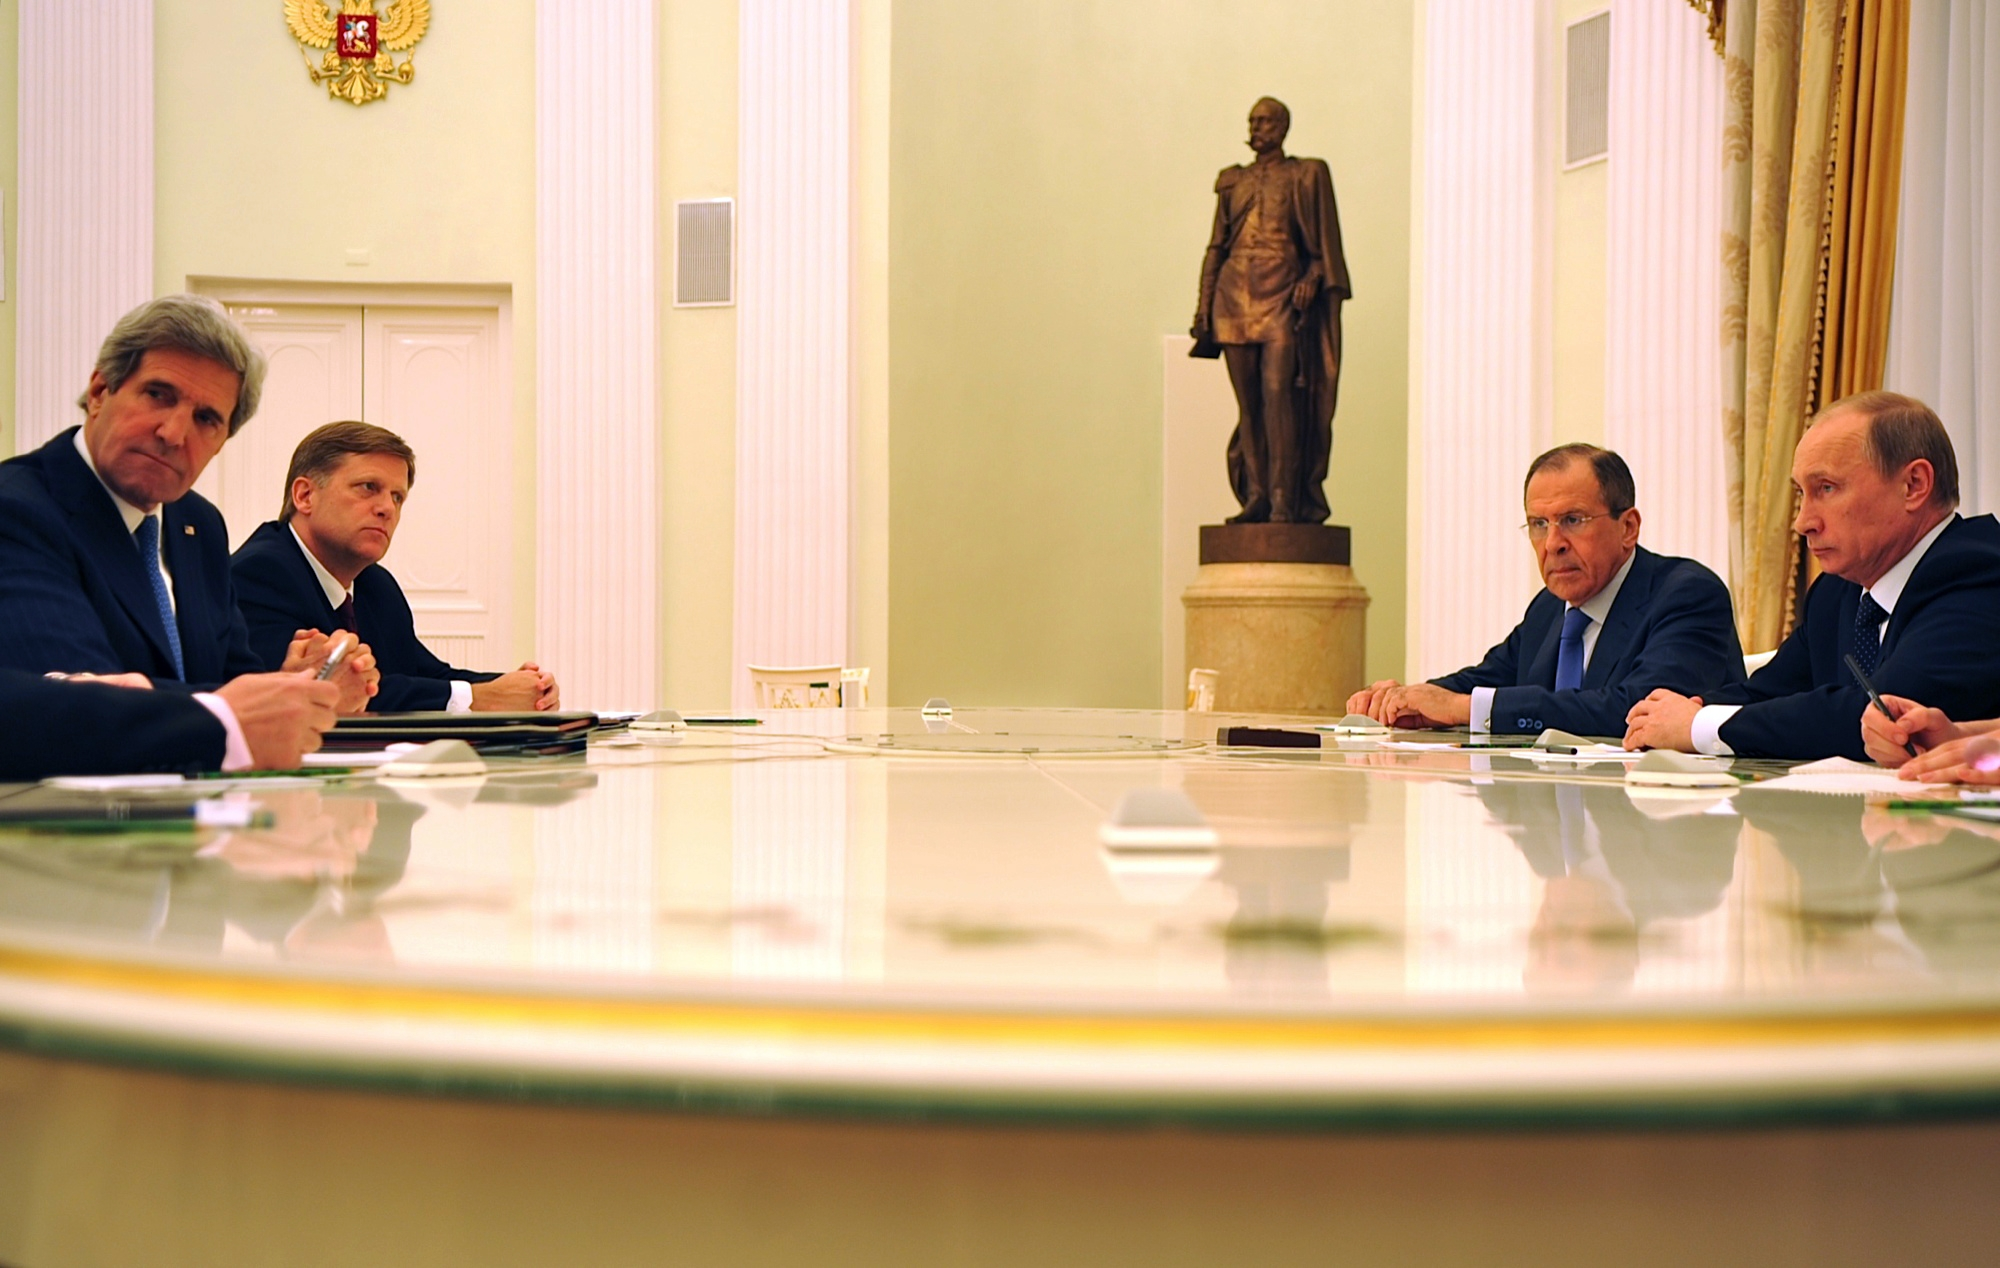 U.S. Secretary of State John Kerry, accompanied by U.S. Ambassador to Russia Michael McFaul meets with Russian President Vladimir Putin and Russian Foreign Minister Sergey Lavrov in Moscow, Russia, on May 7, 2013. [State Department photo/ Public Domain]